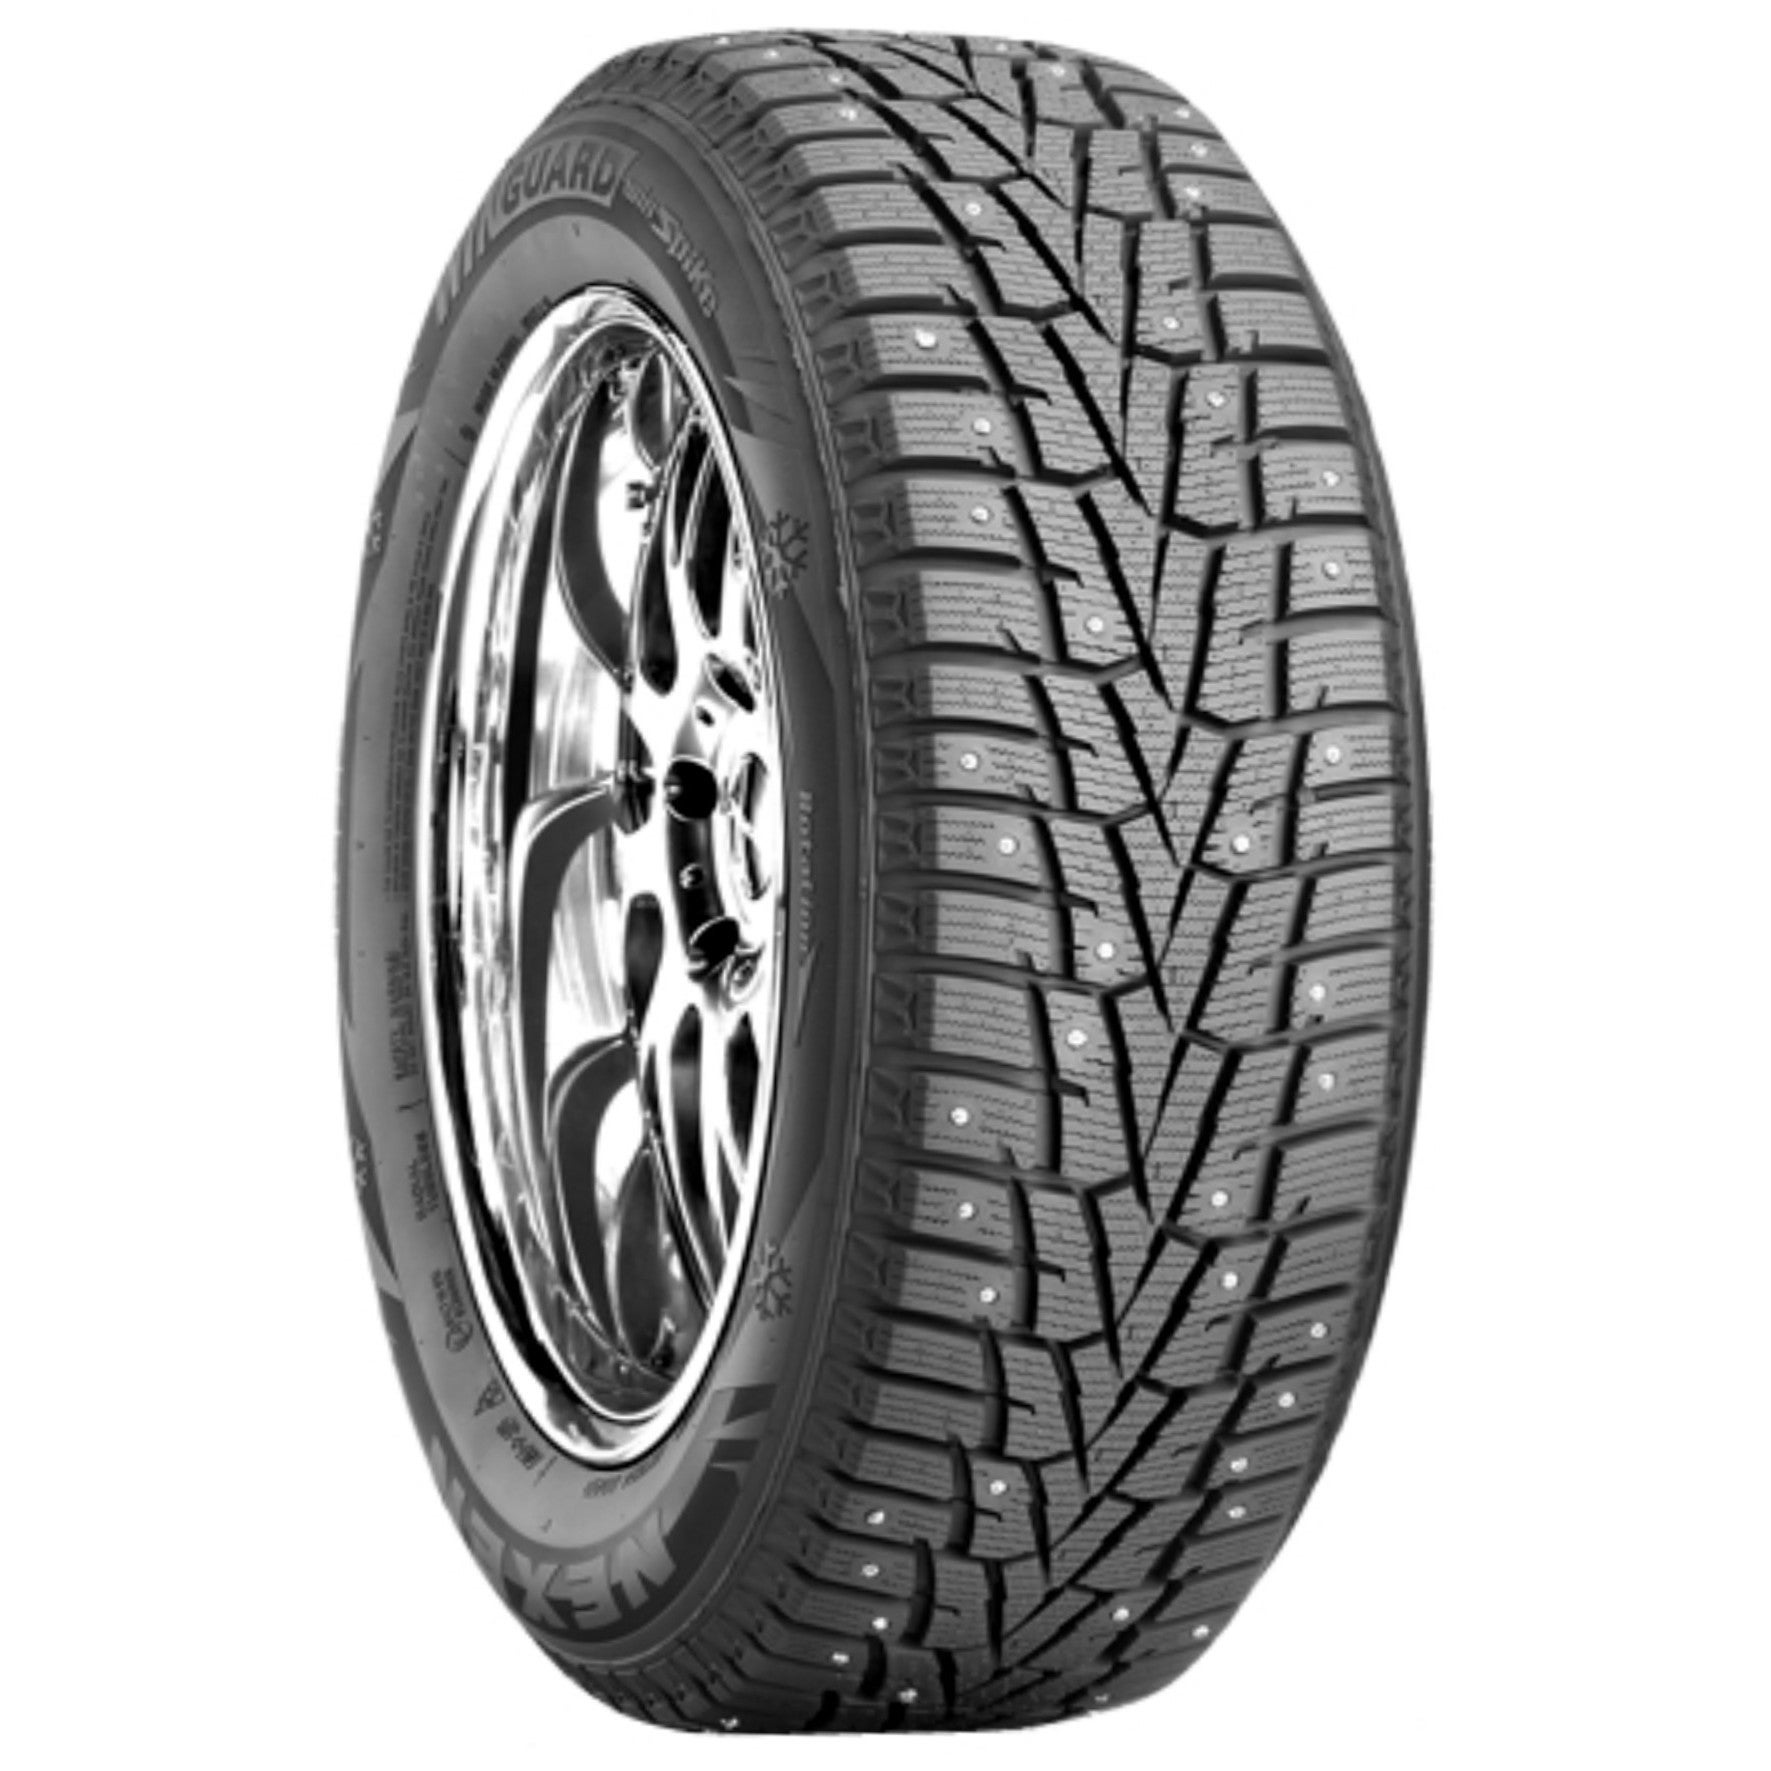 Nexen Winguard Winspike Winter Tire - 245/70R16 107T (Black)